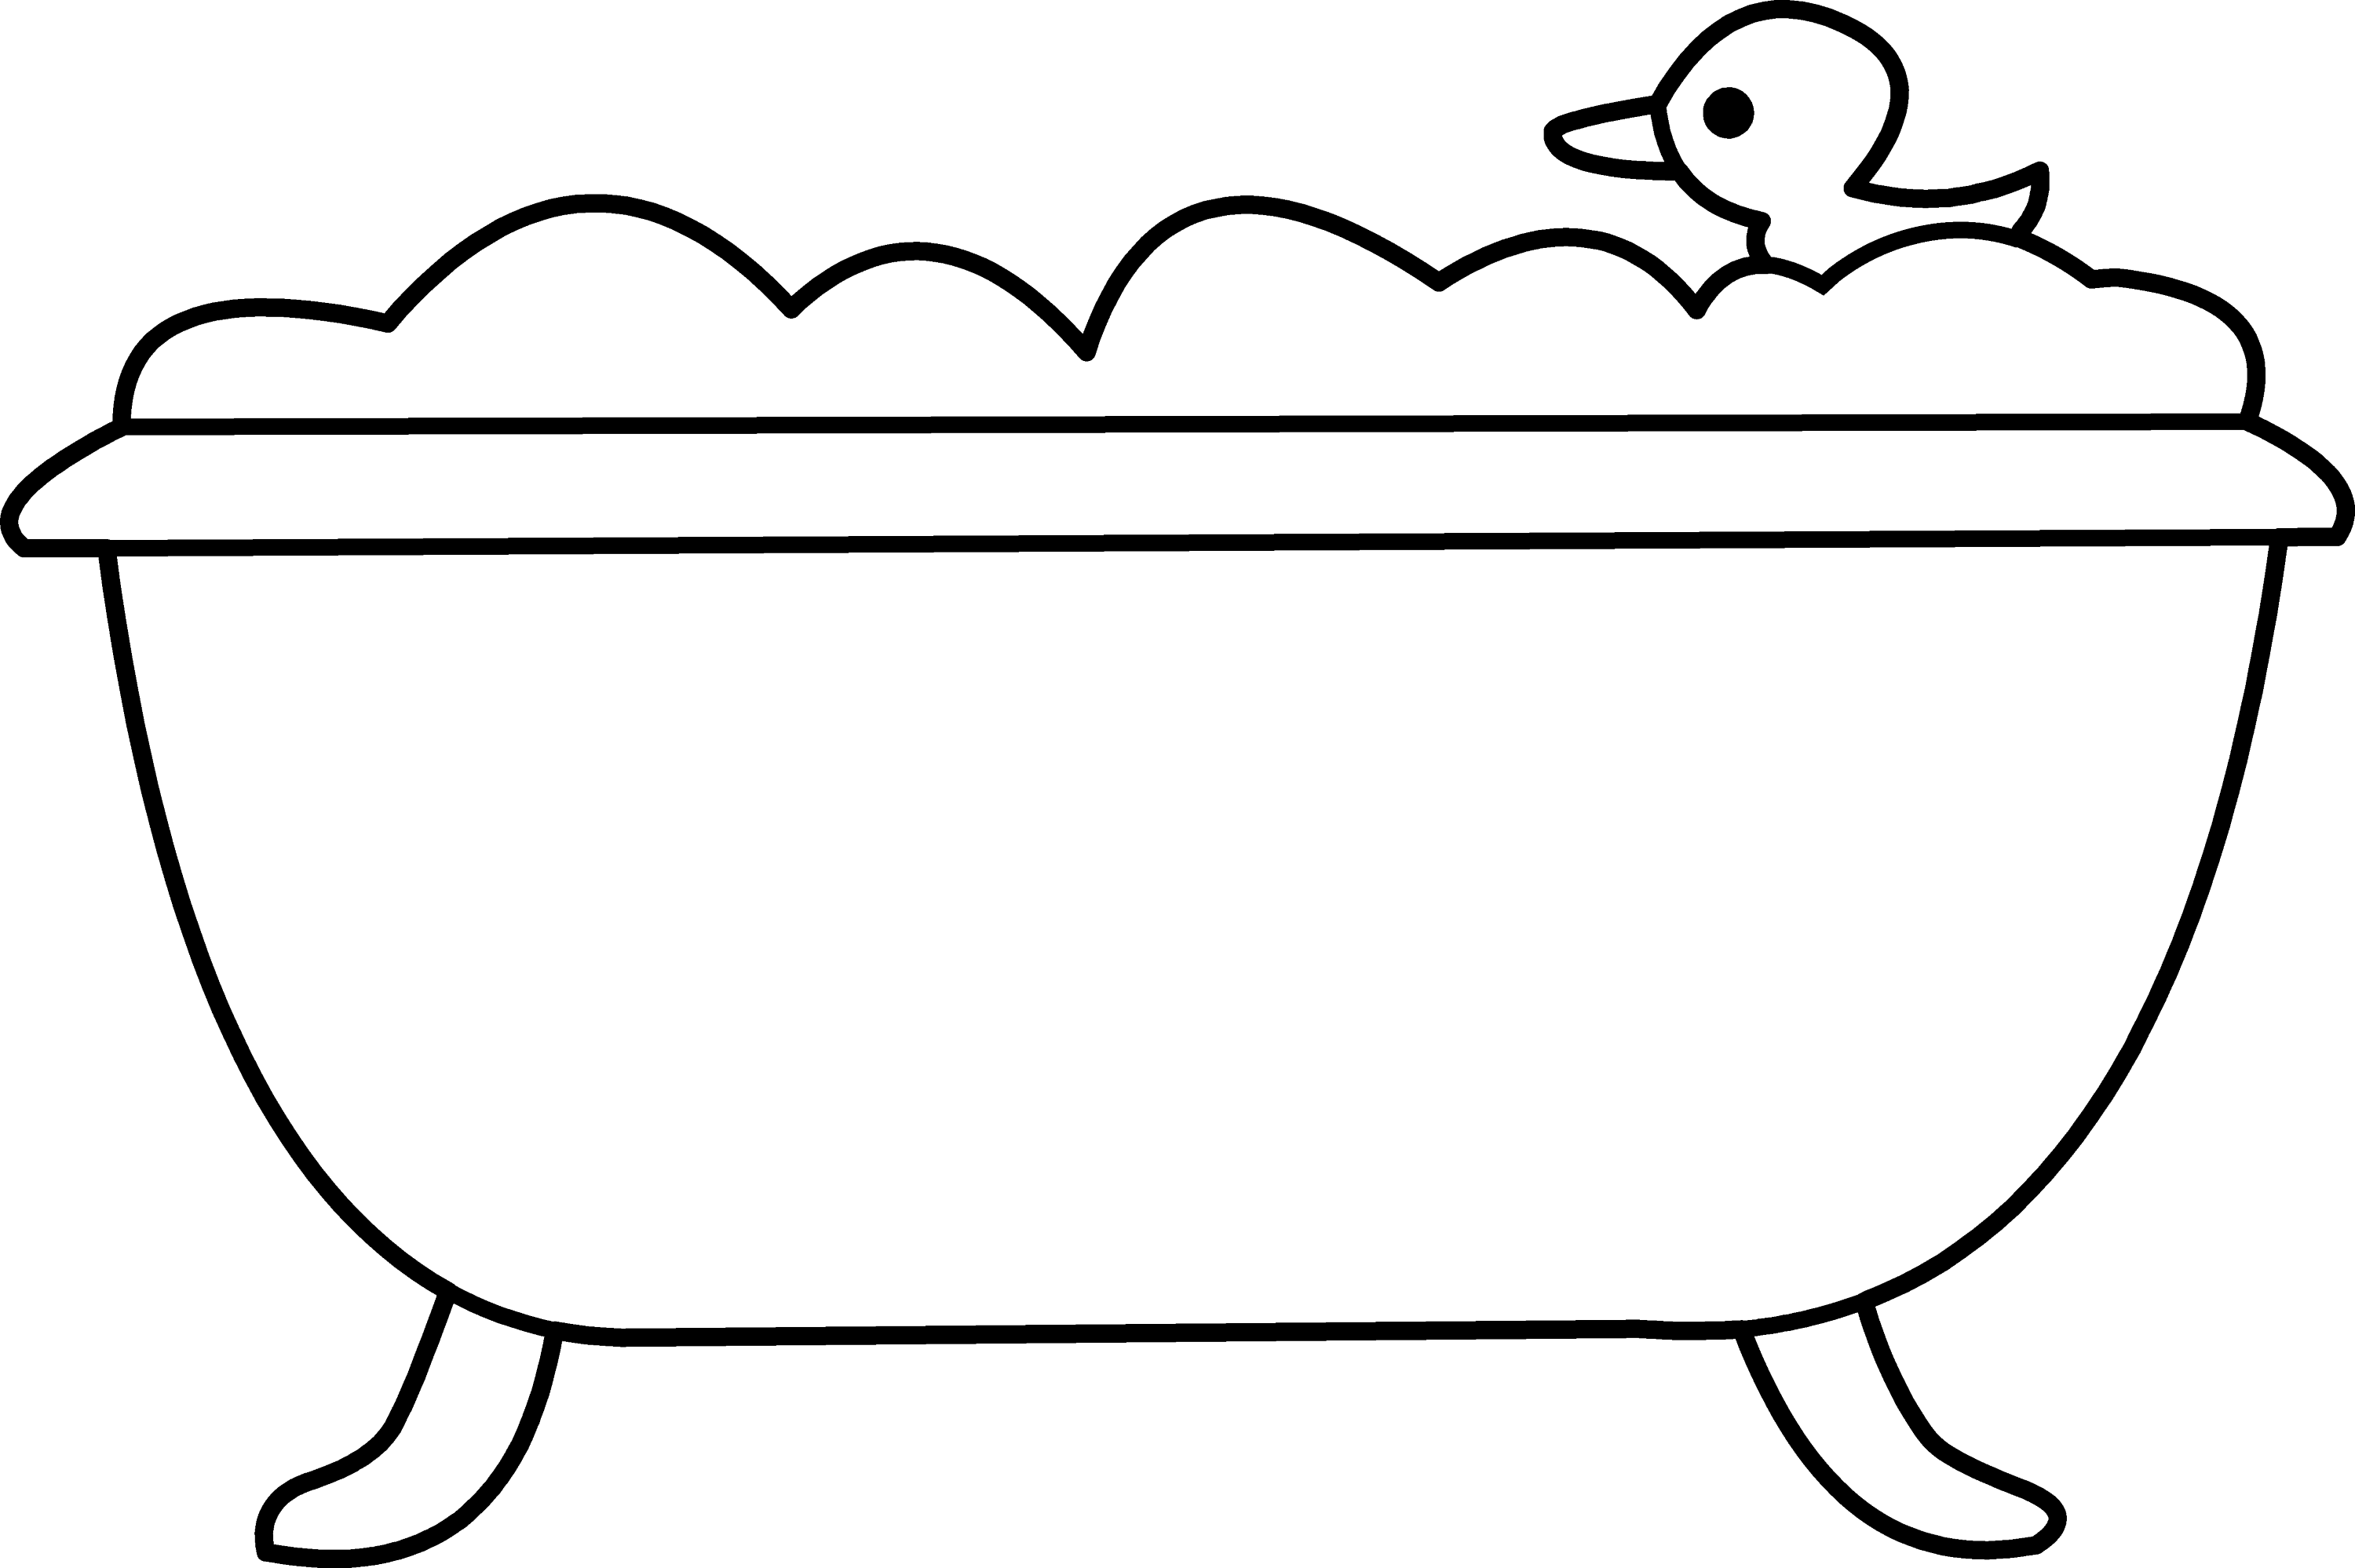 coloring pages bathtubs - photo#31